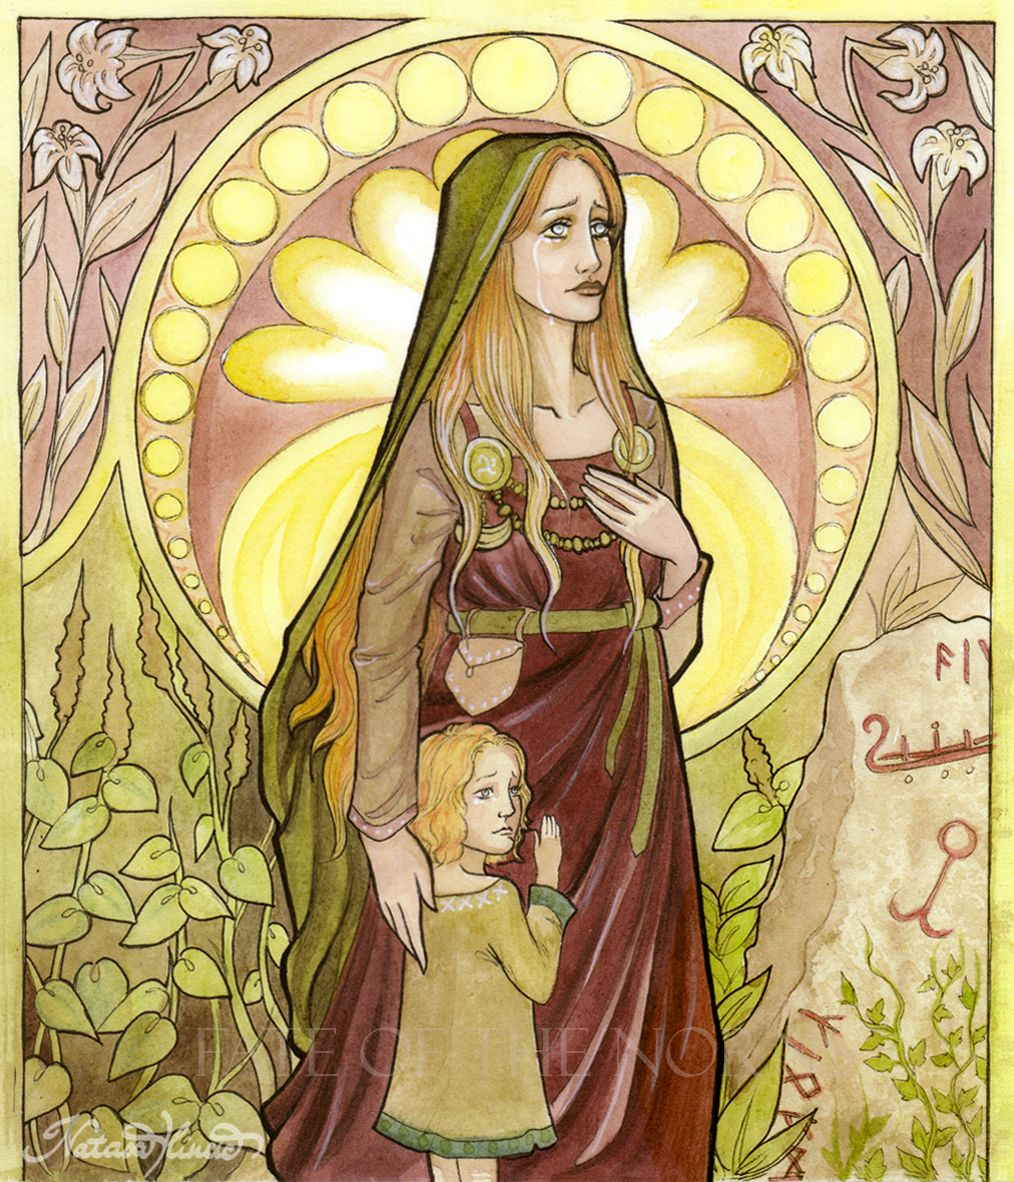 Norse goddess Nanna, mother of Forseti, god of justice and reconciliation, and wife of Baldr.  After Baldr's death she dies of grief, and her body is placed on Baldr's ship with his corpse and the two are set aflame and pushed out to sea.